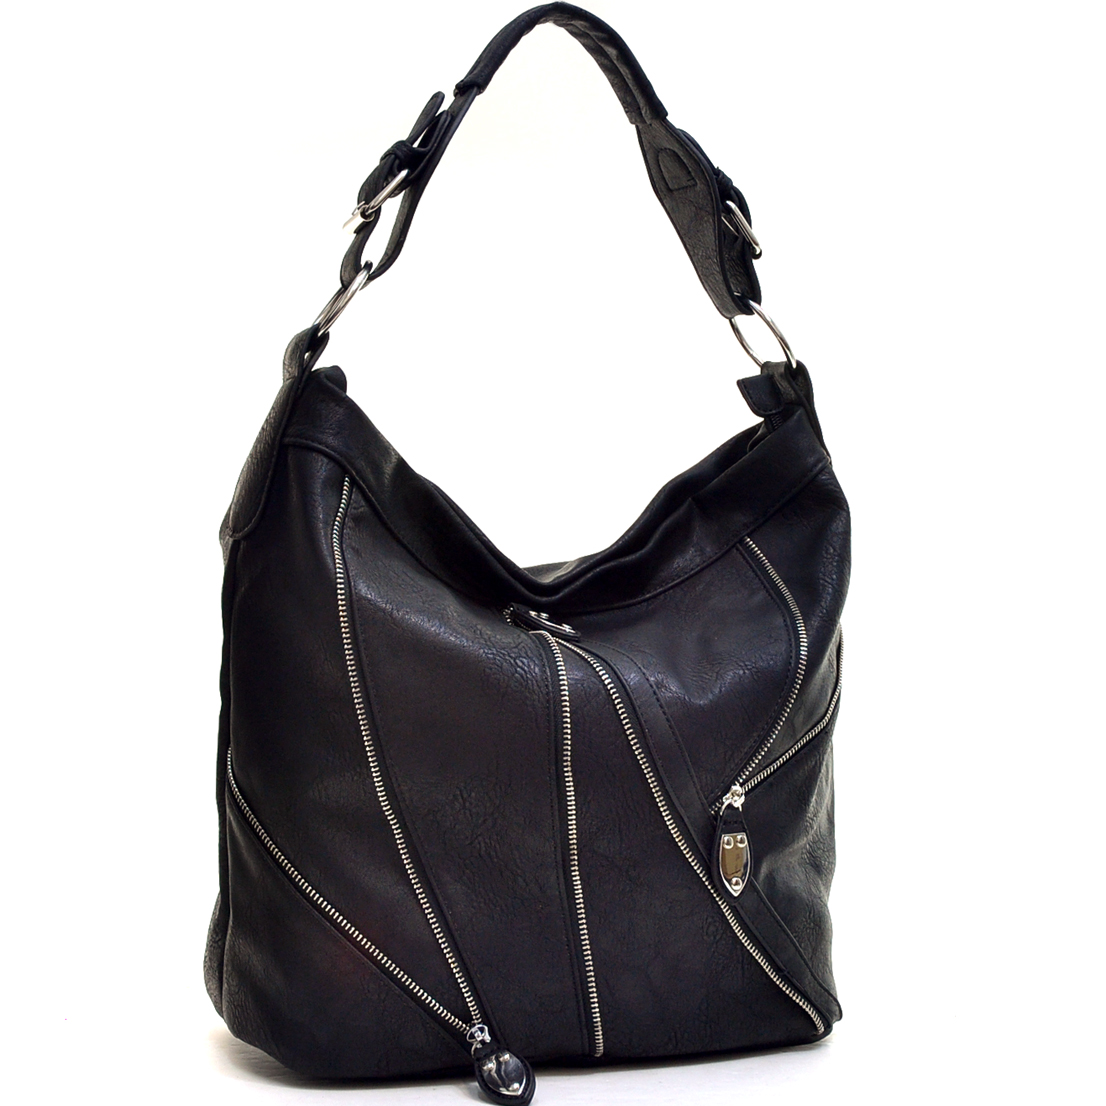 Silver-Tone Zipper Front Hobo Bag with Buckle Shoulder Strap